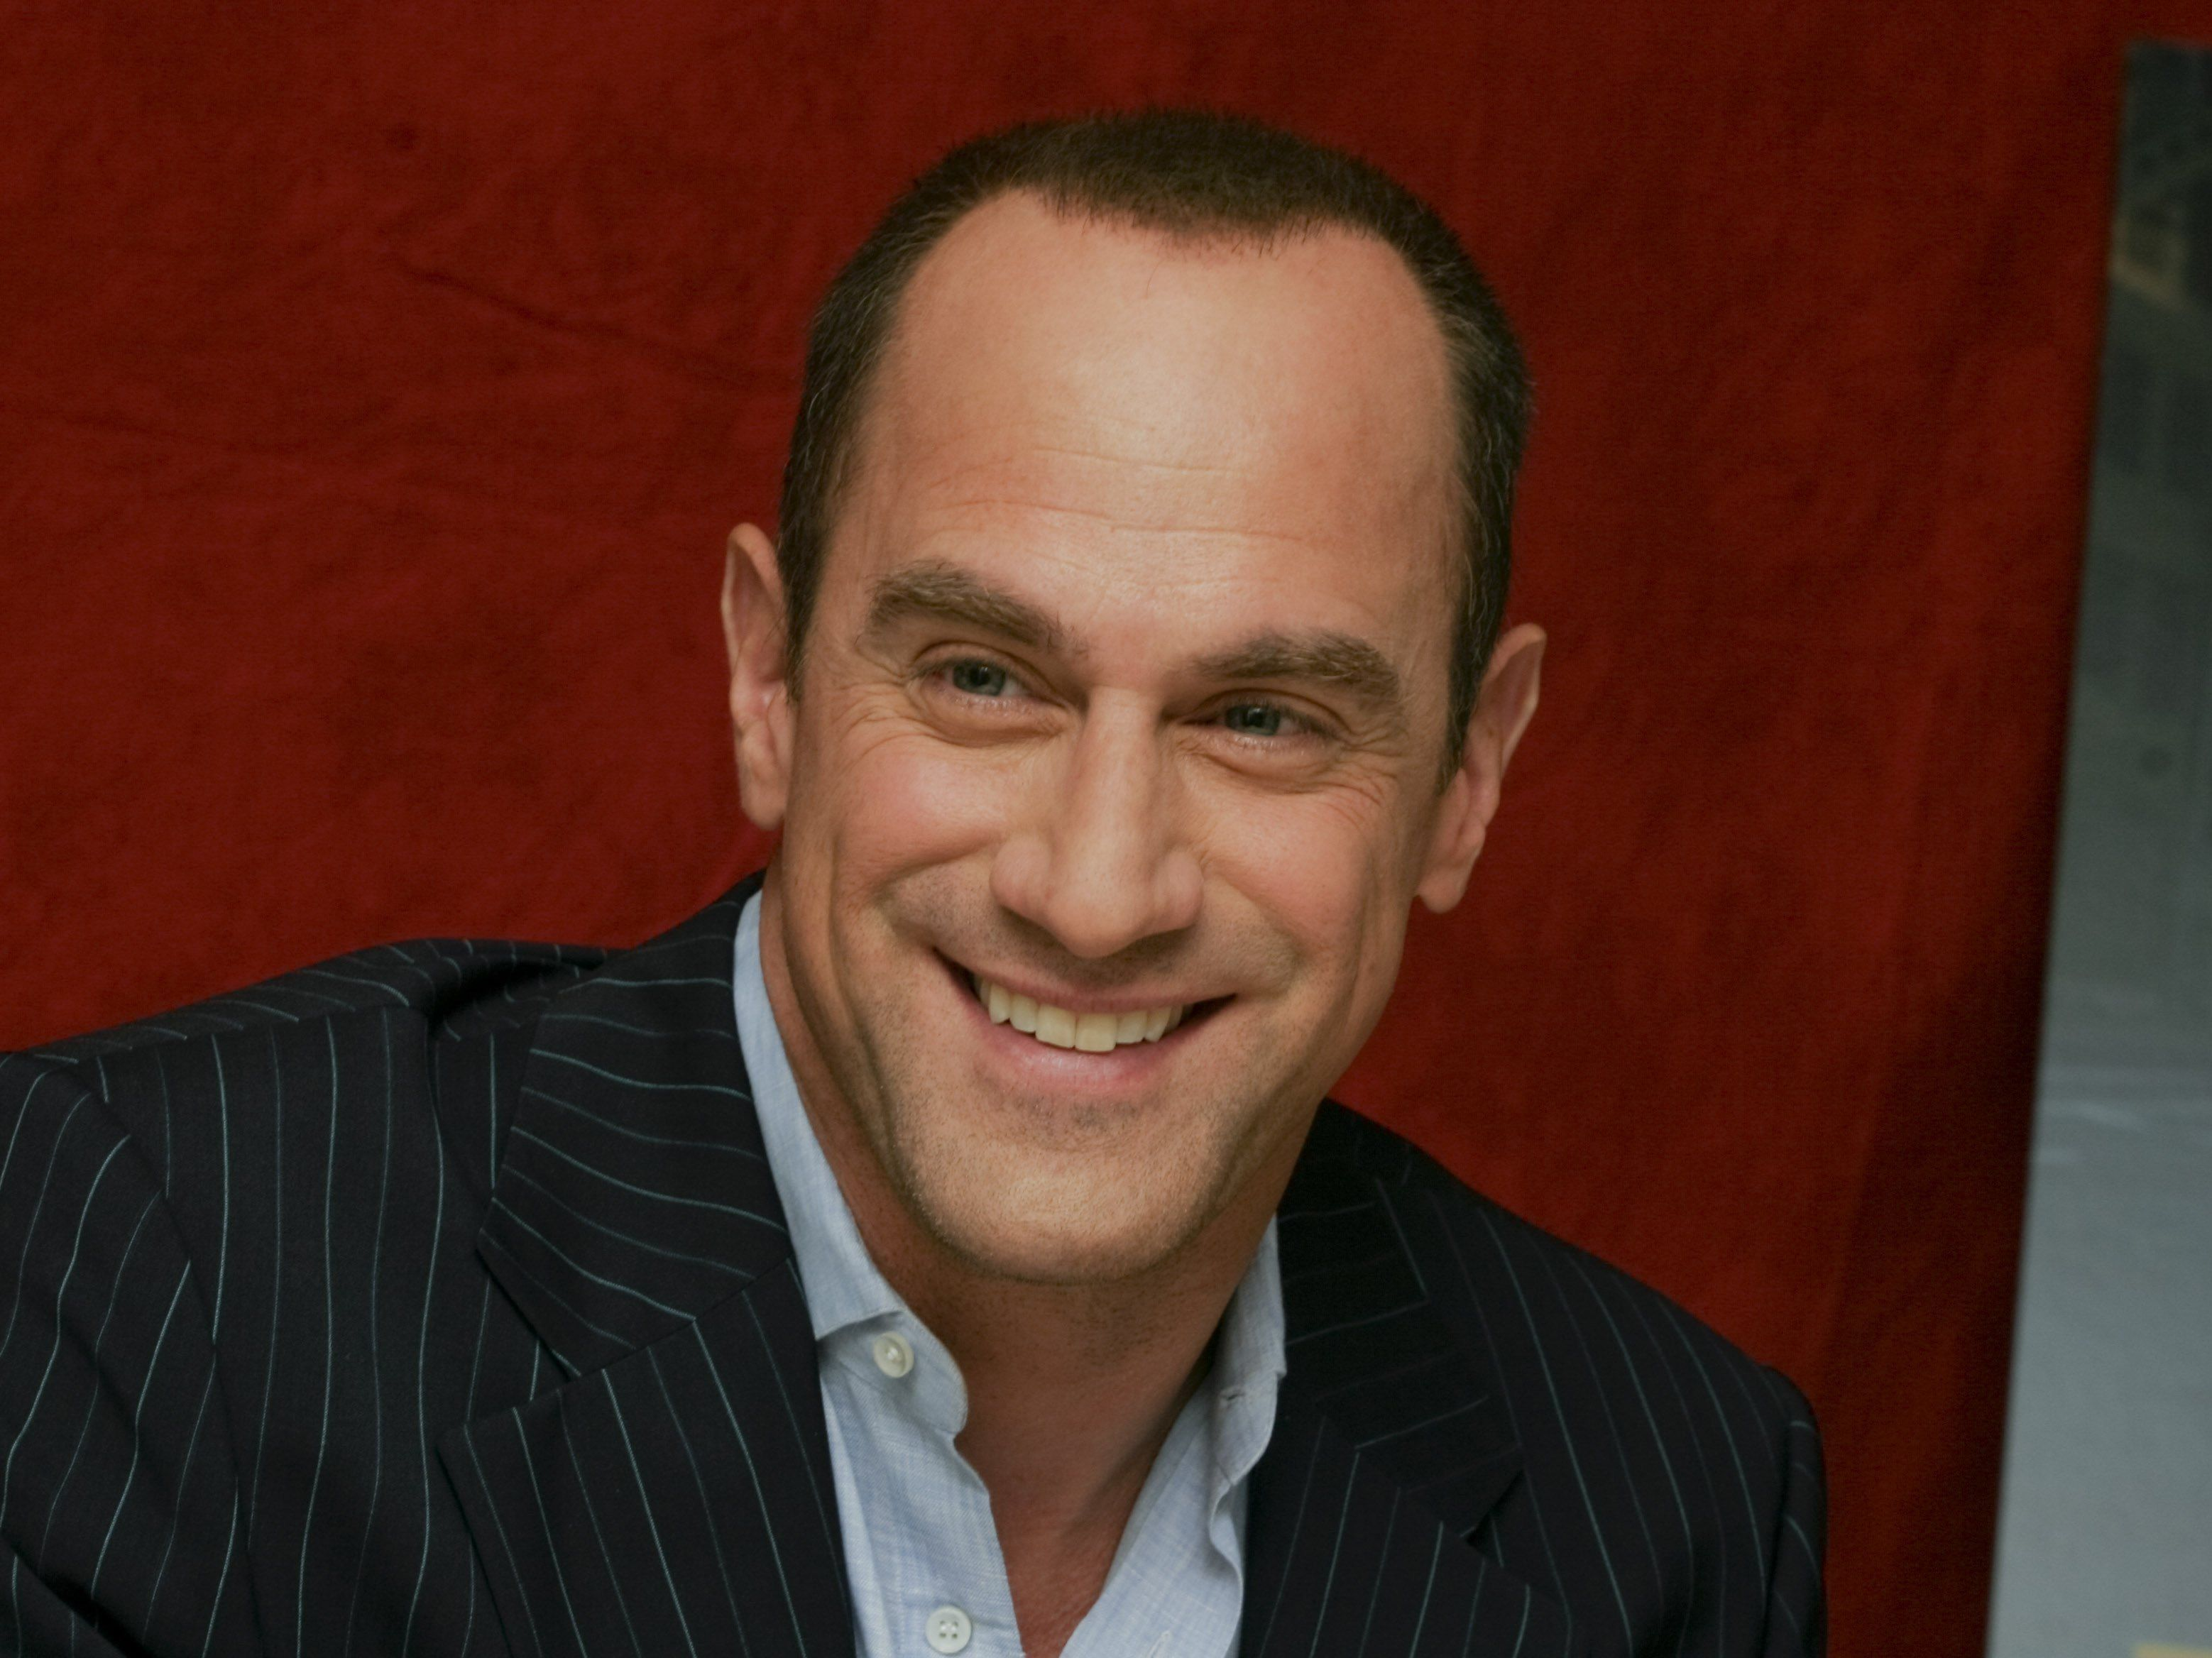 Elliot stabler happened to what What happened